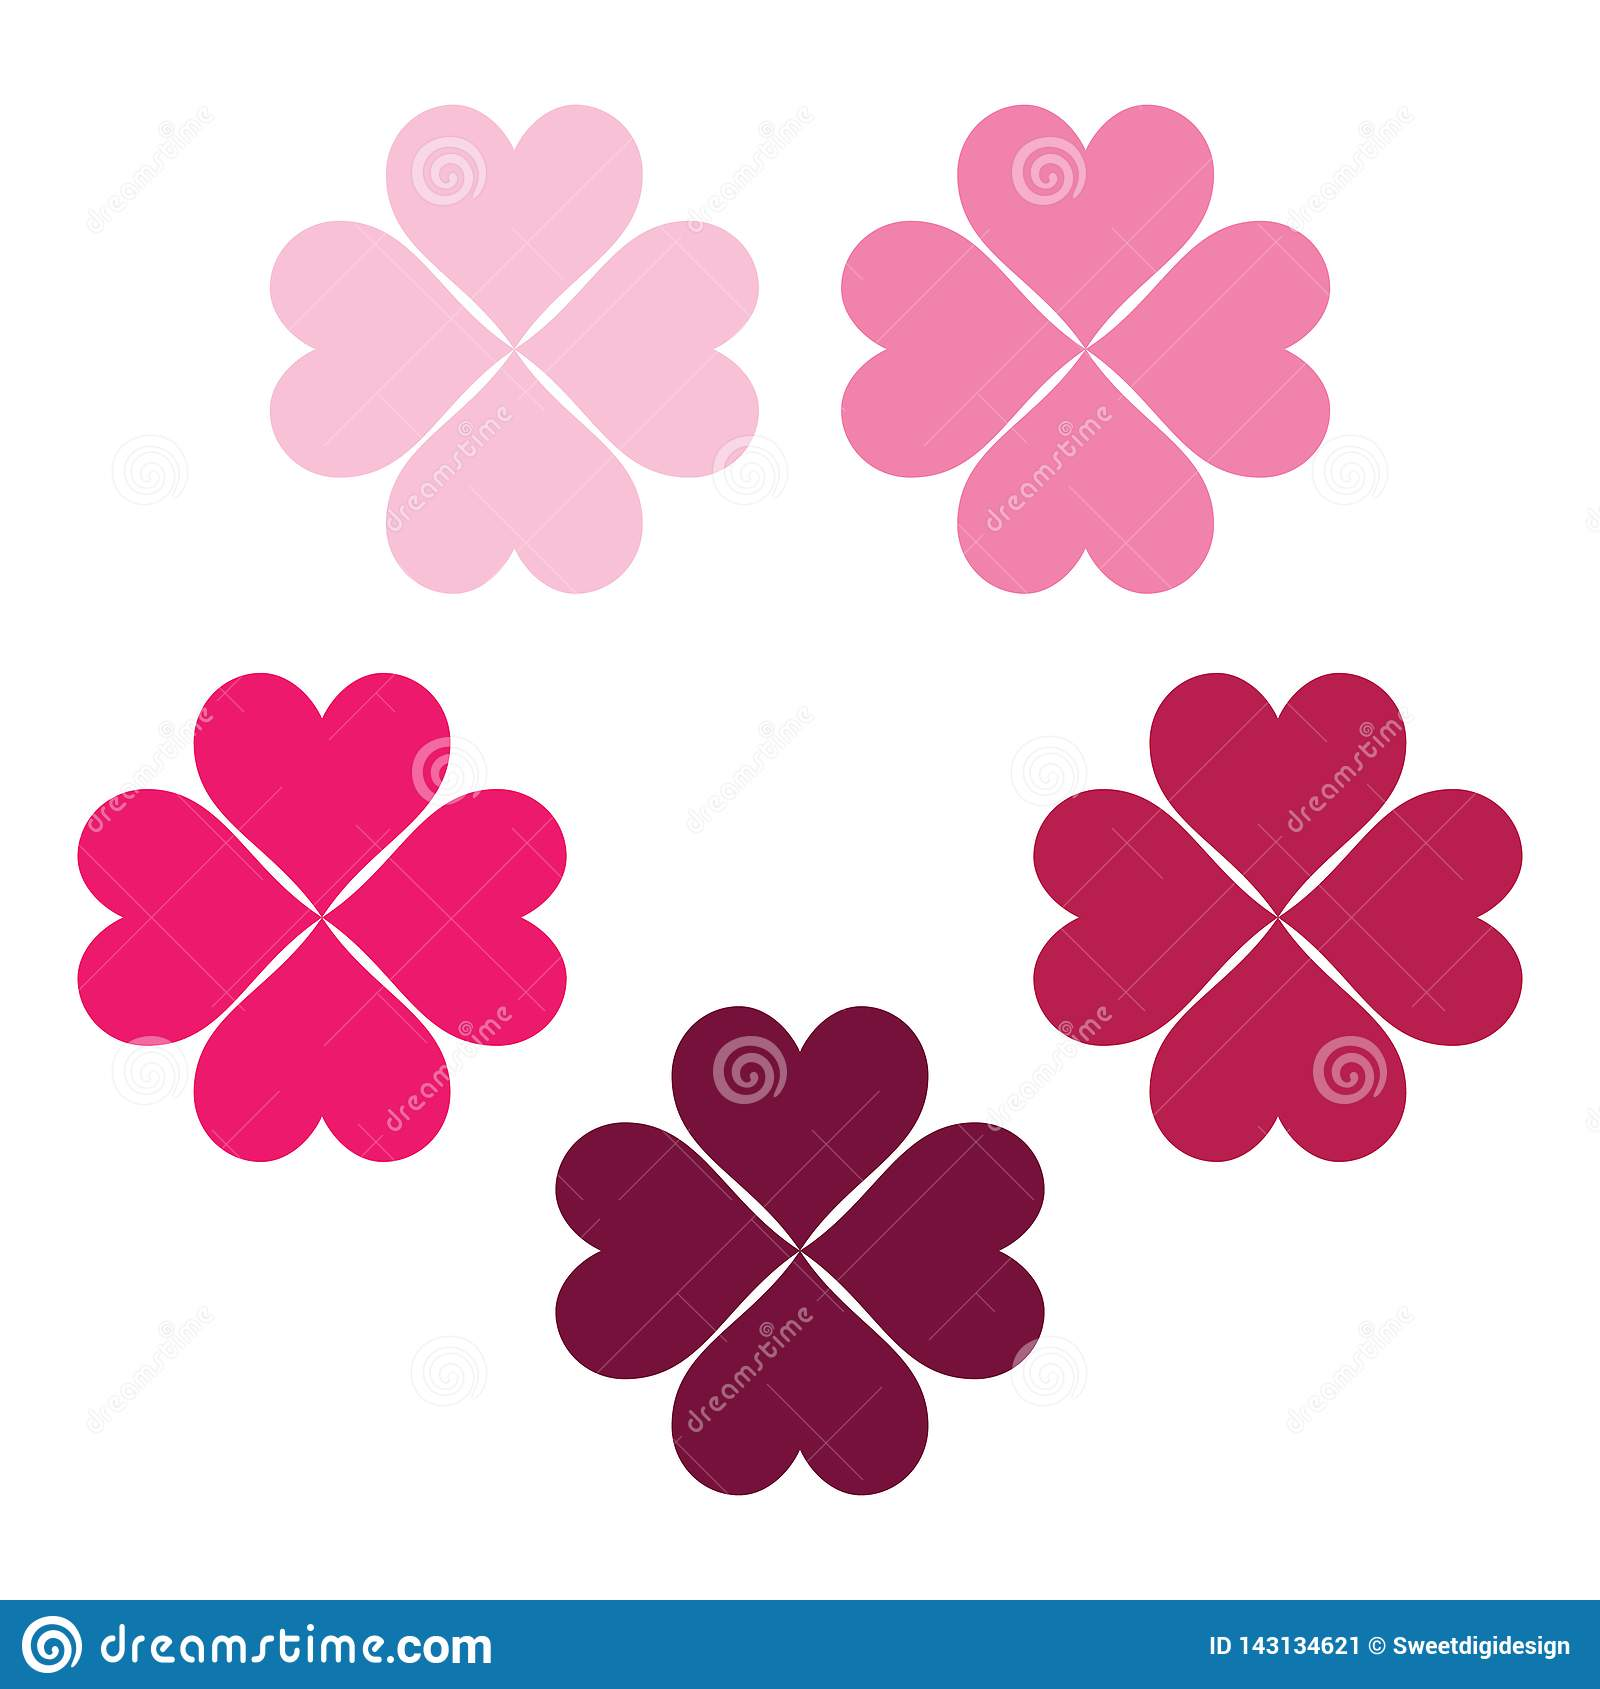 Carmine set of clover leaves, a pink symbol of luck, poker symbol icon.